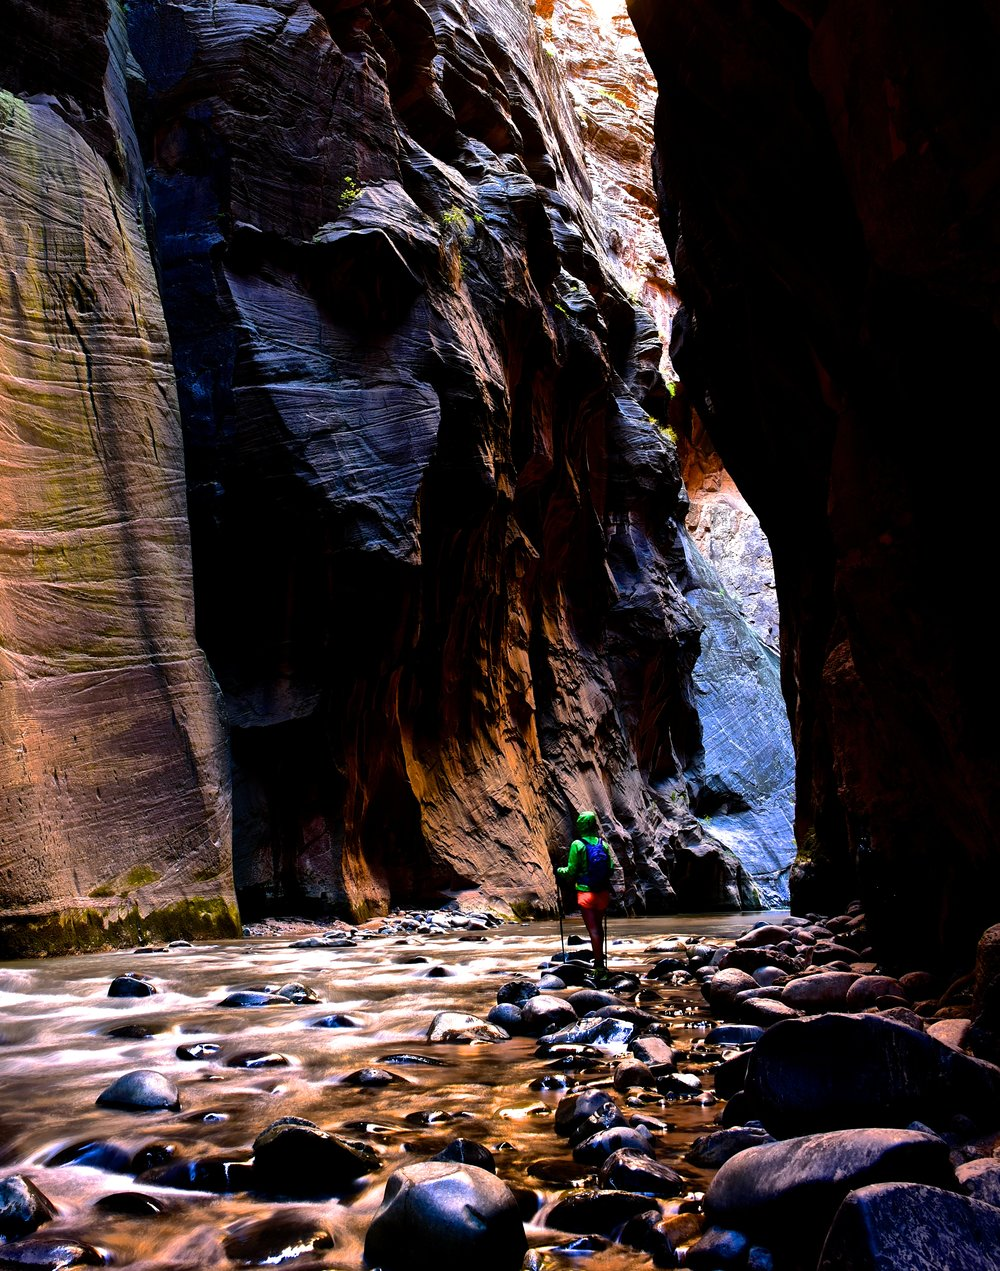 Mesmerized by The Narrows